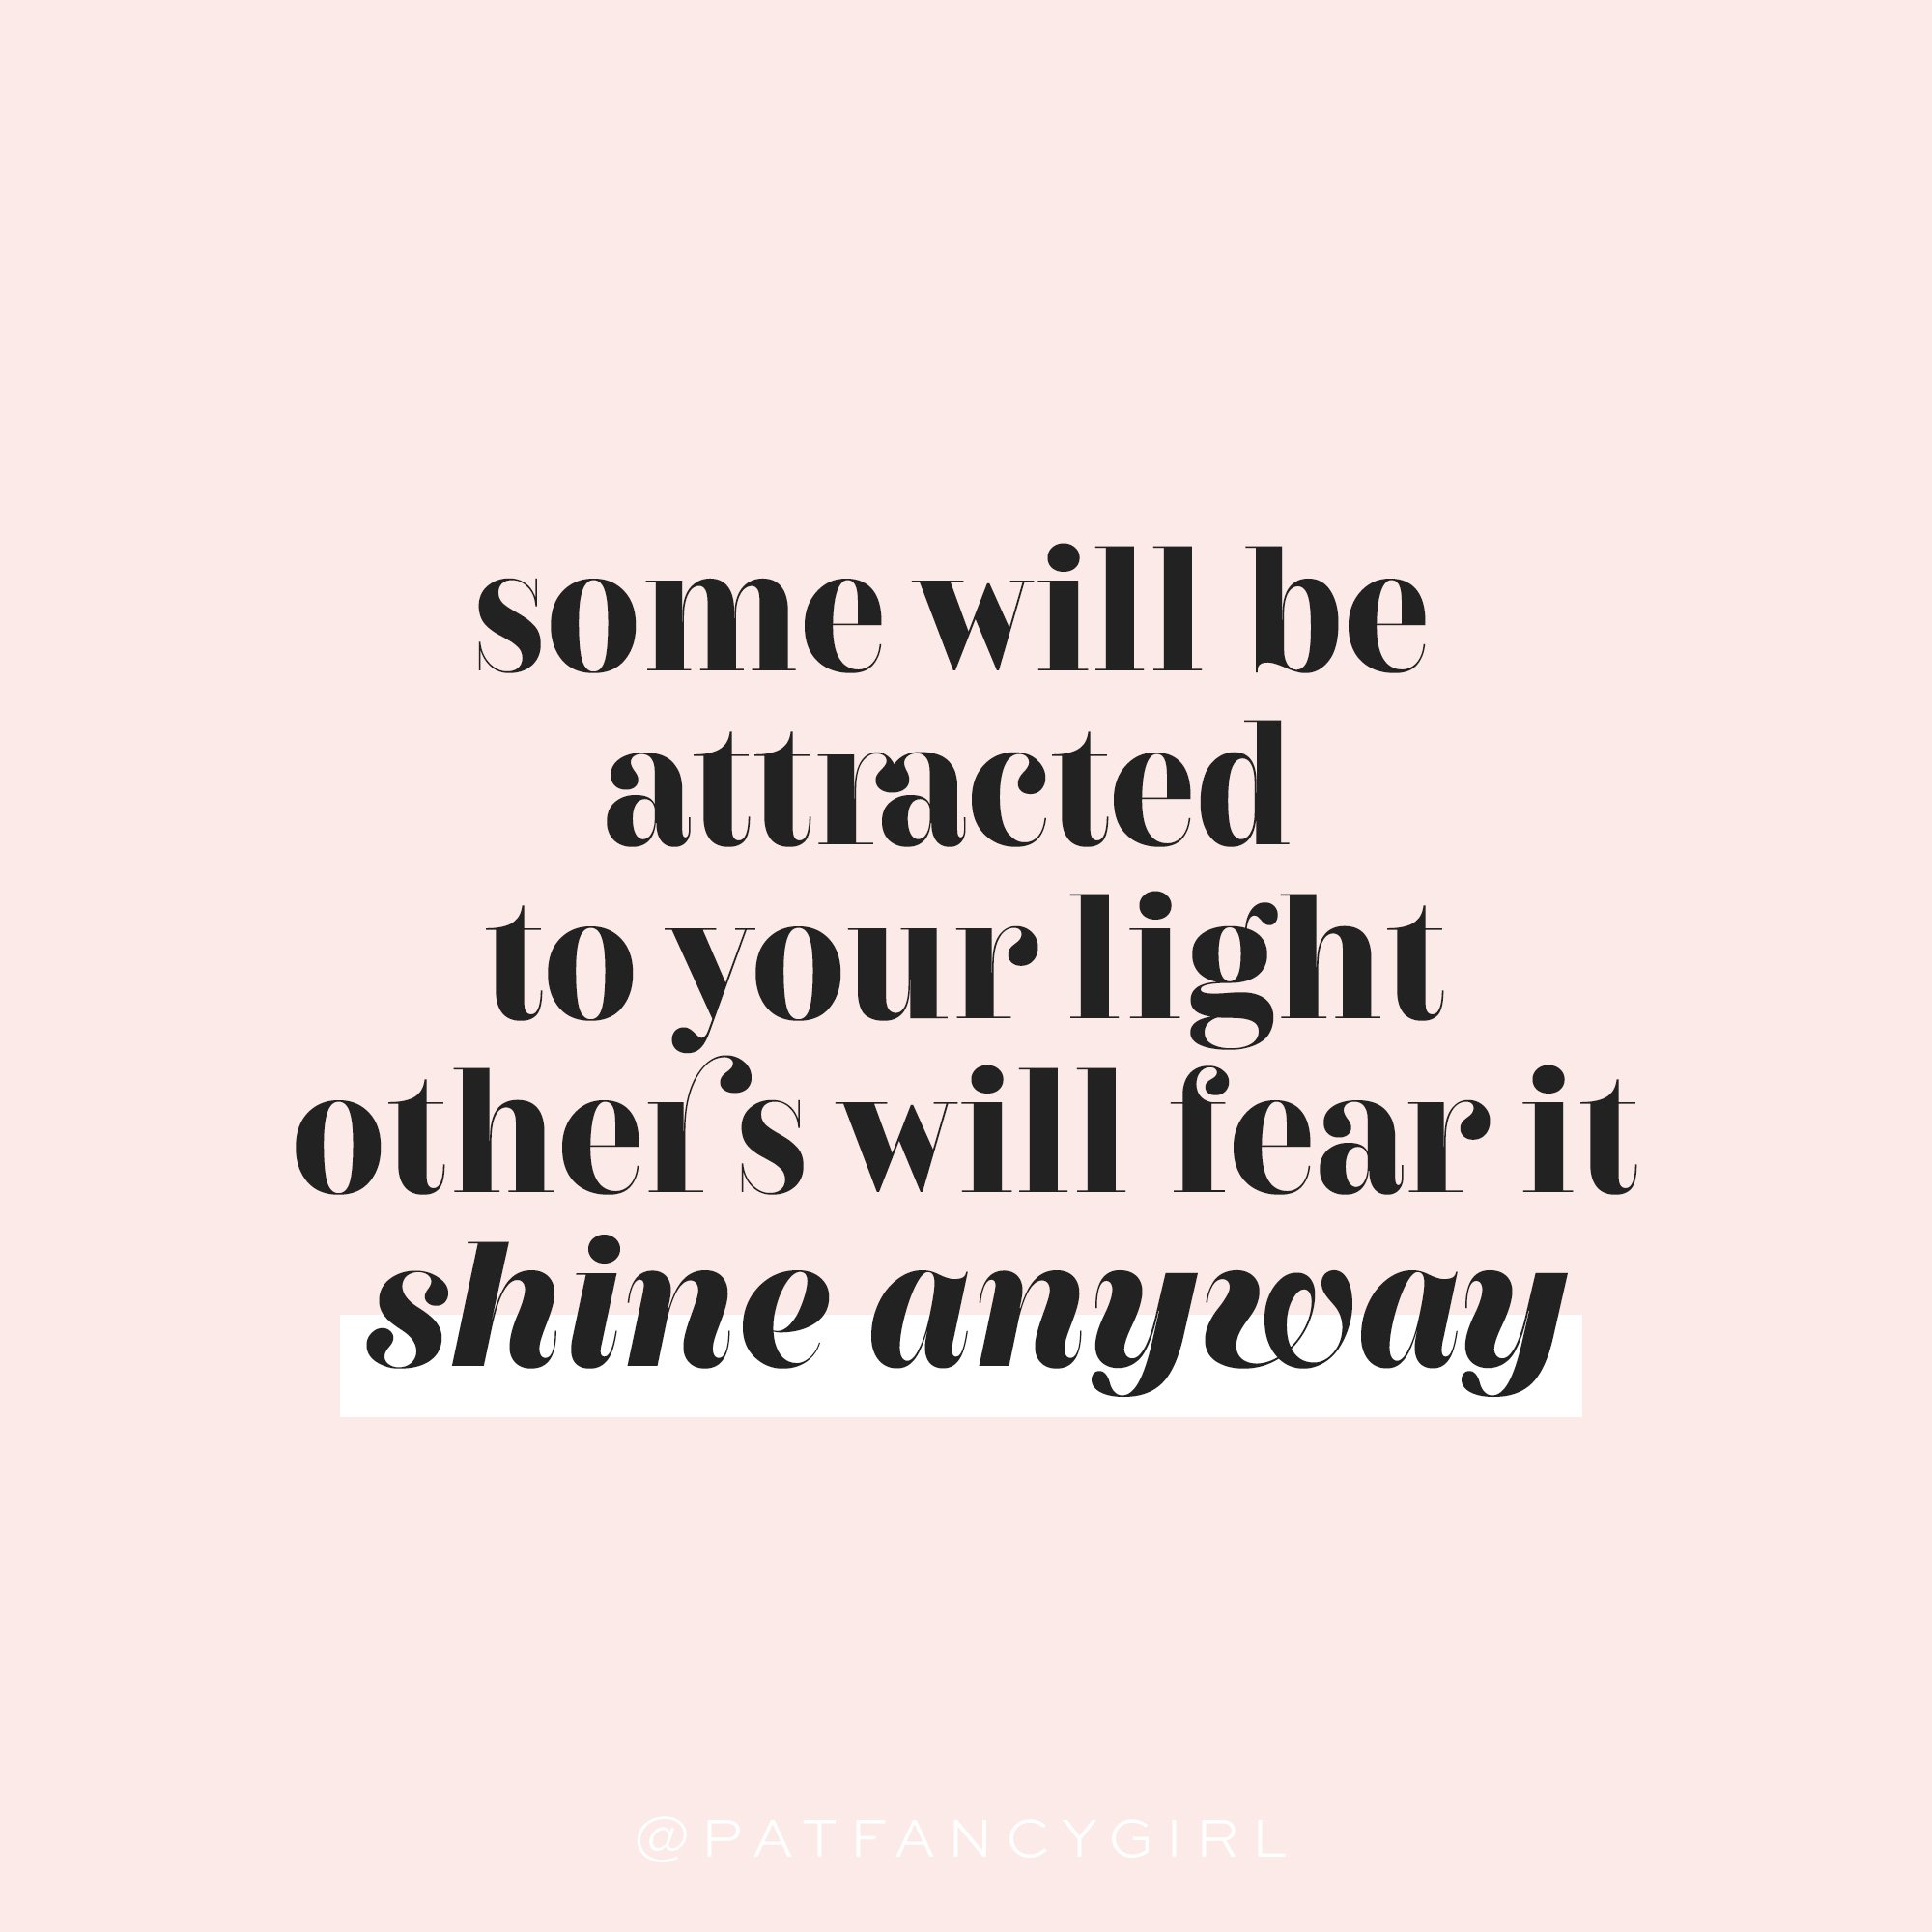 Some will be attracted to your light; others will feat it. Shine anyway.